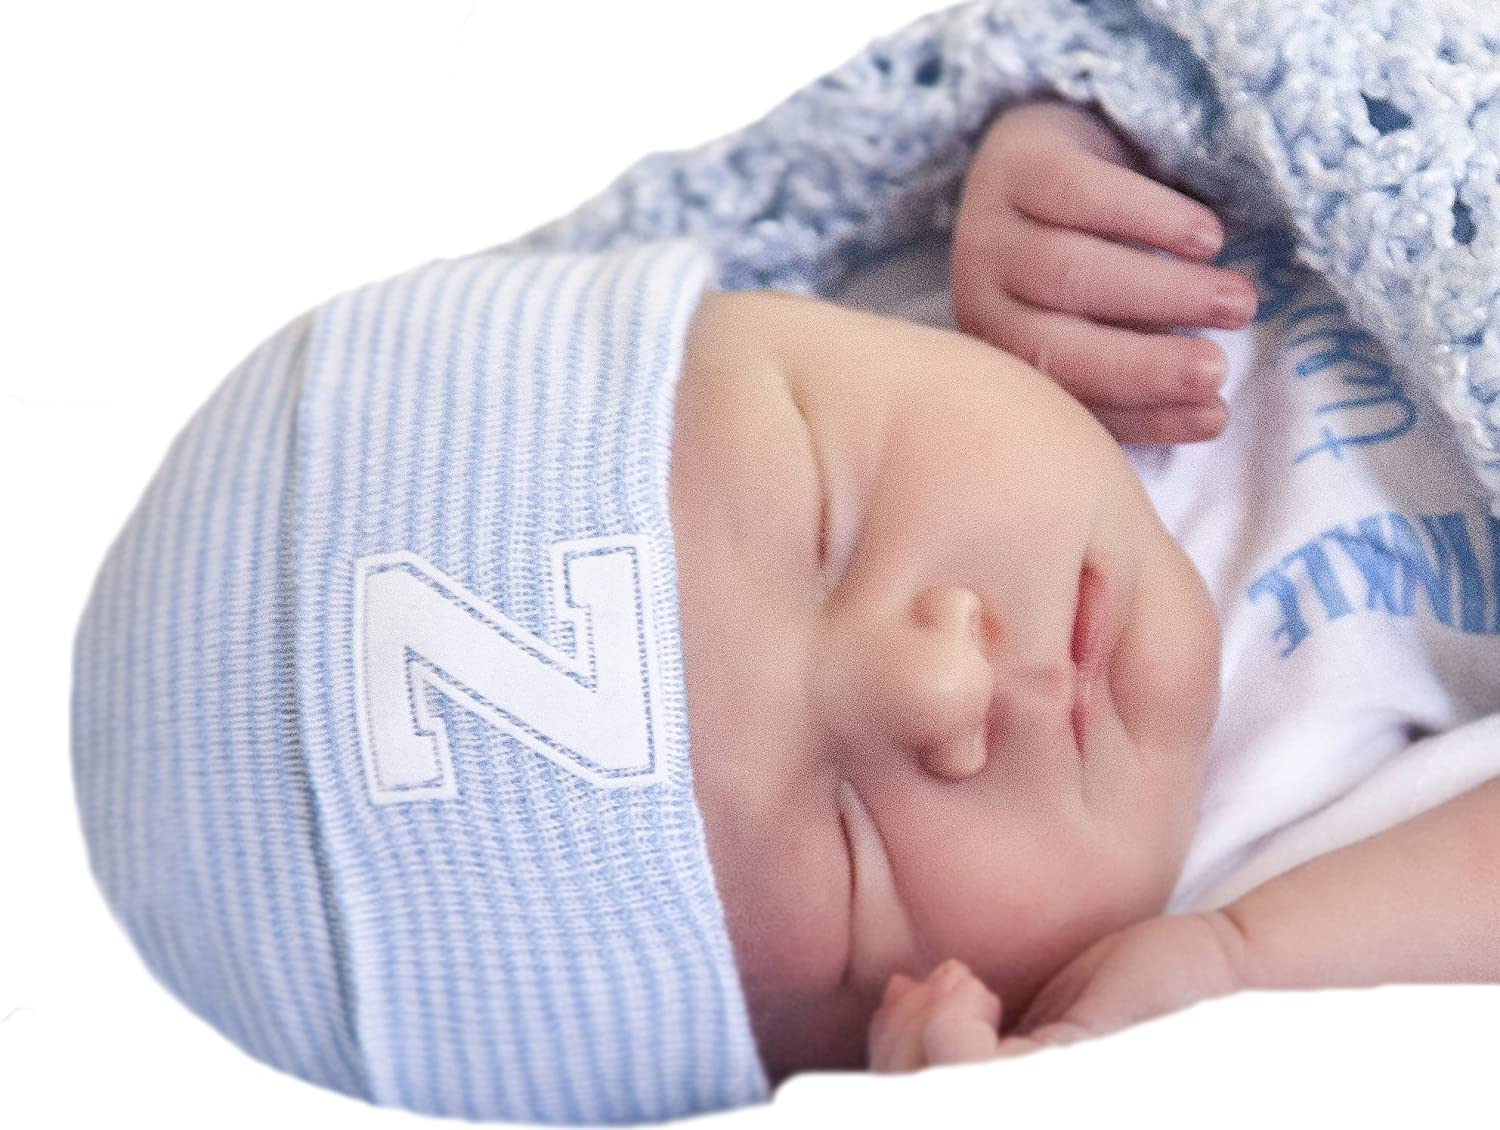 7803631338b6c Amazon.com  Melondipity s Newborn Boy Blue   White Striped Hospital Hat  with White Flocked Collegiate Letter Inital (A)  Clothing